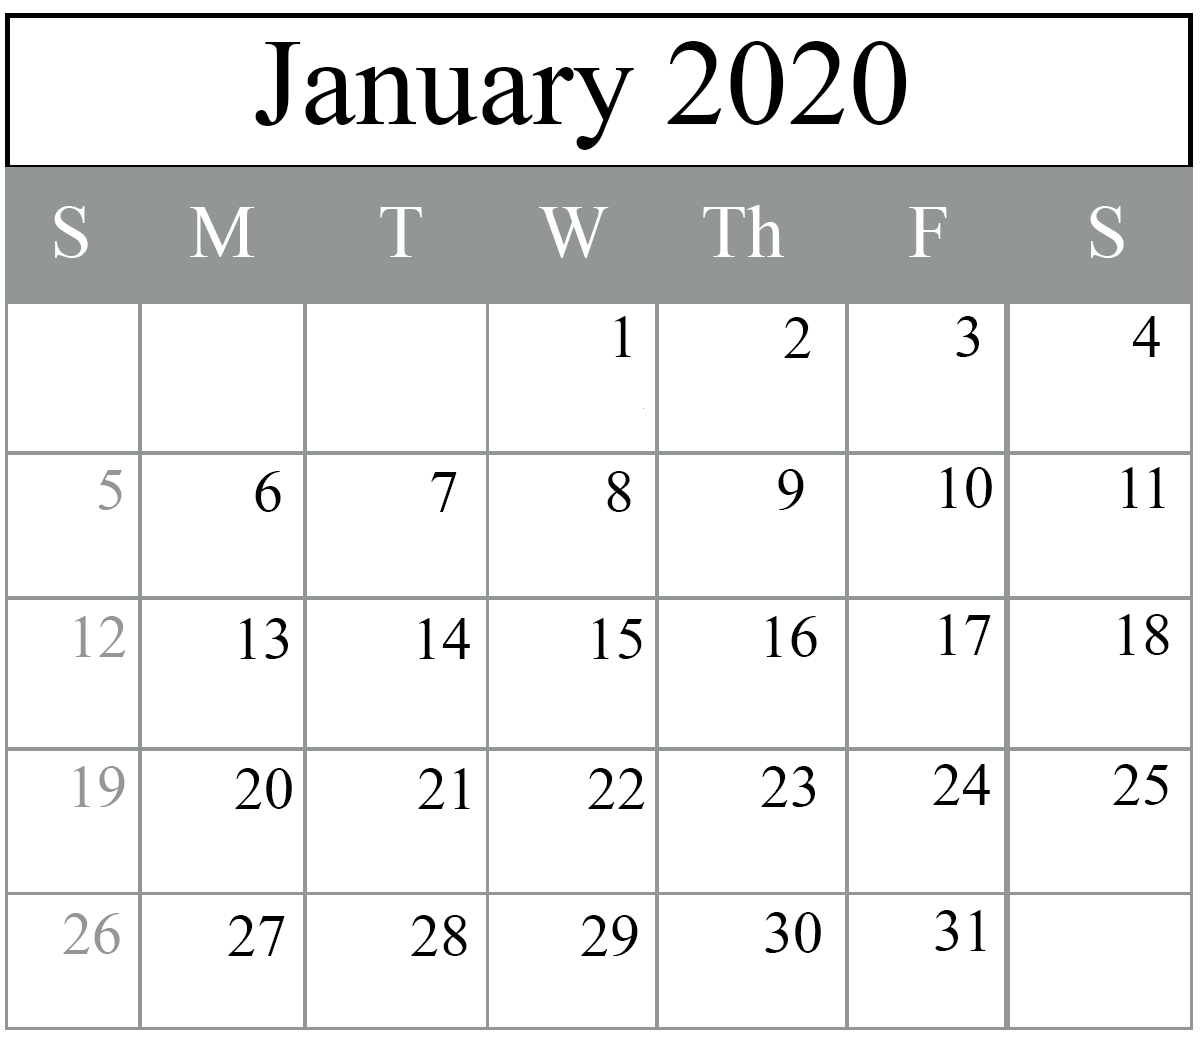 January 2020 Calendar Excel and PDF